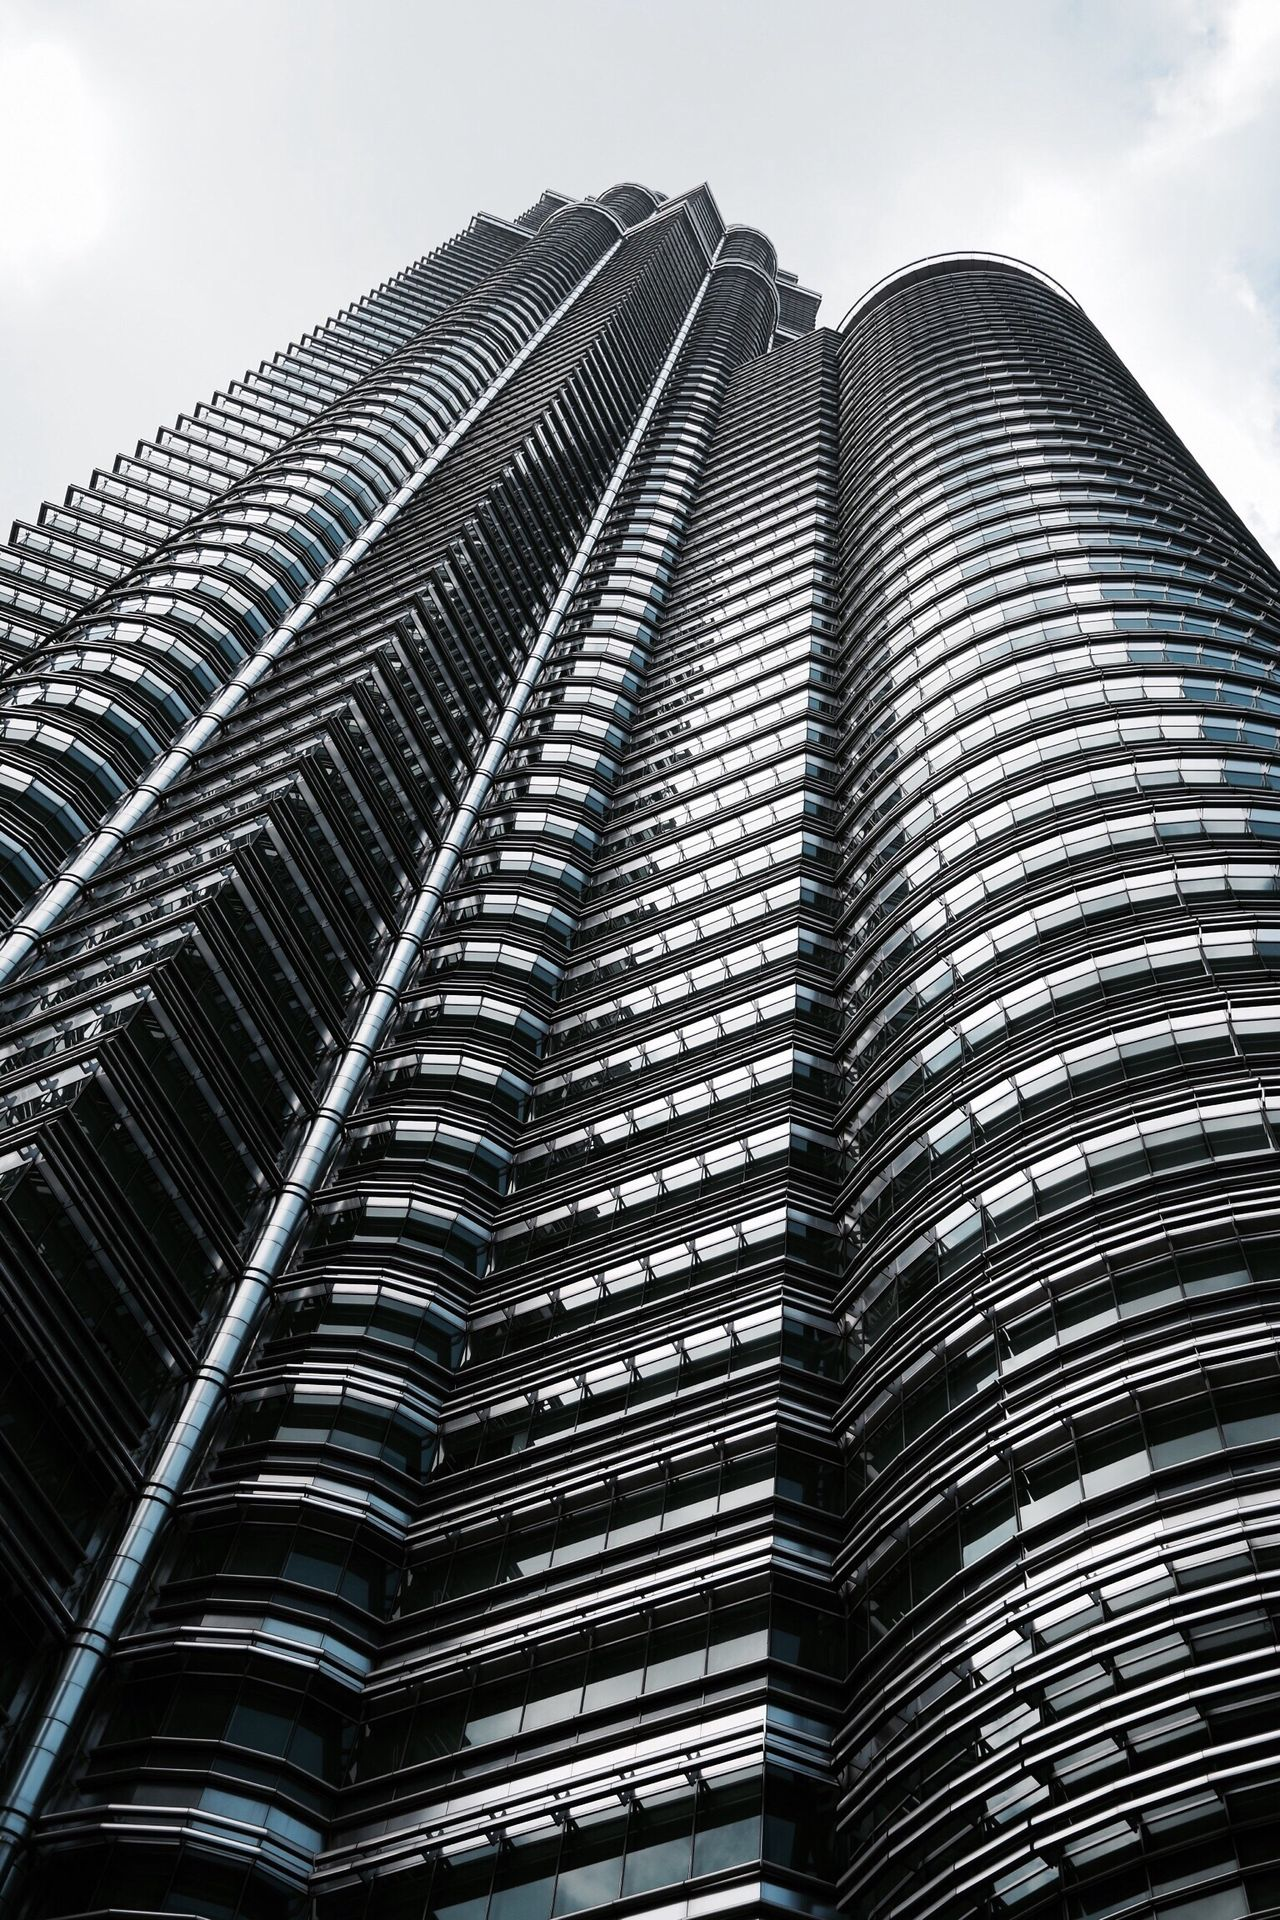 Architecture KualaLumpur KLCC Malaysia Architecture Low Angle View Building Exterior Built Structure Modern No People Sky Day Outdoors Skyscraper First Eyeem Photo EyeEmNewHere